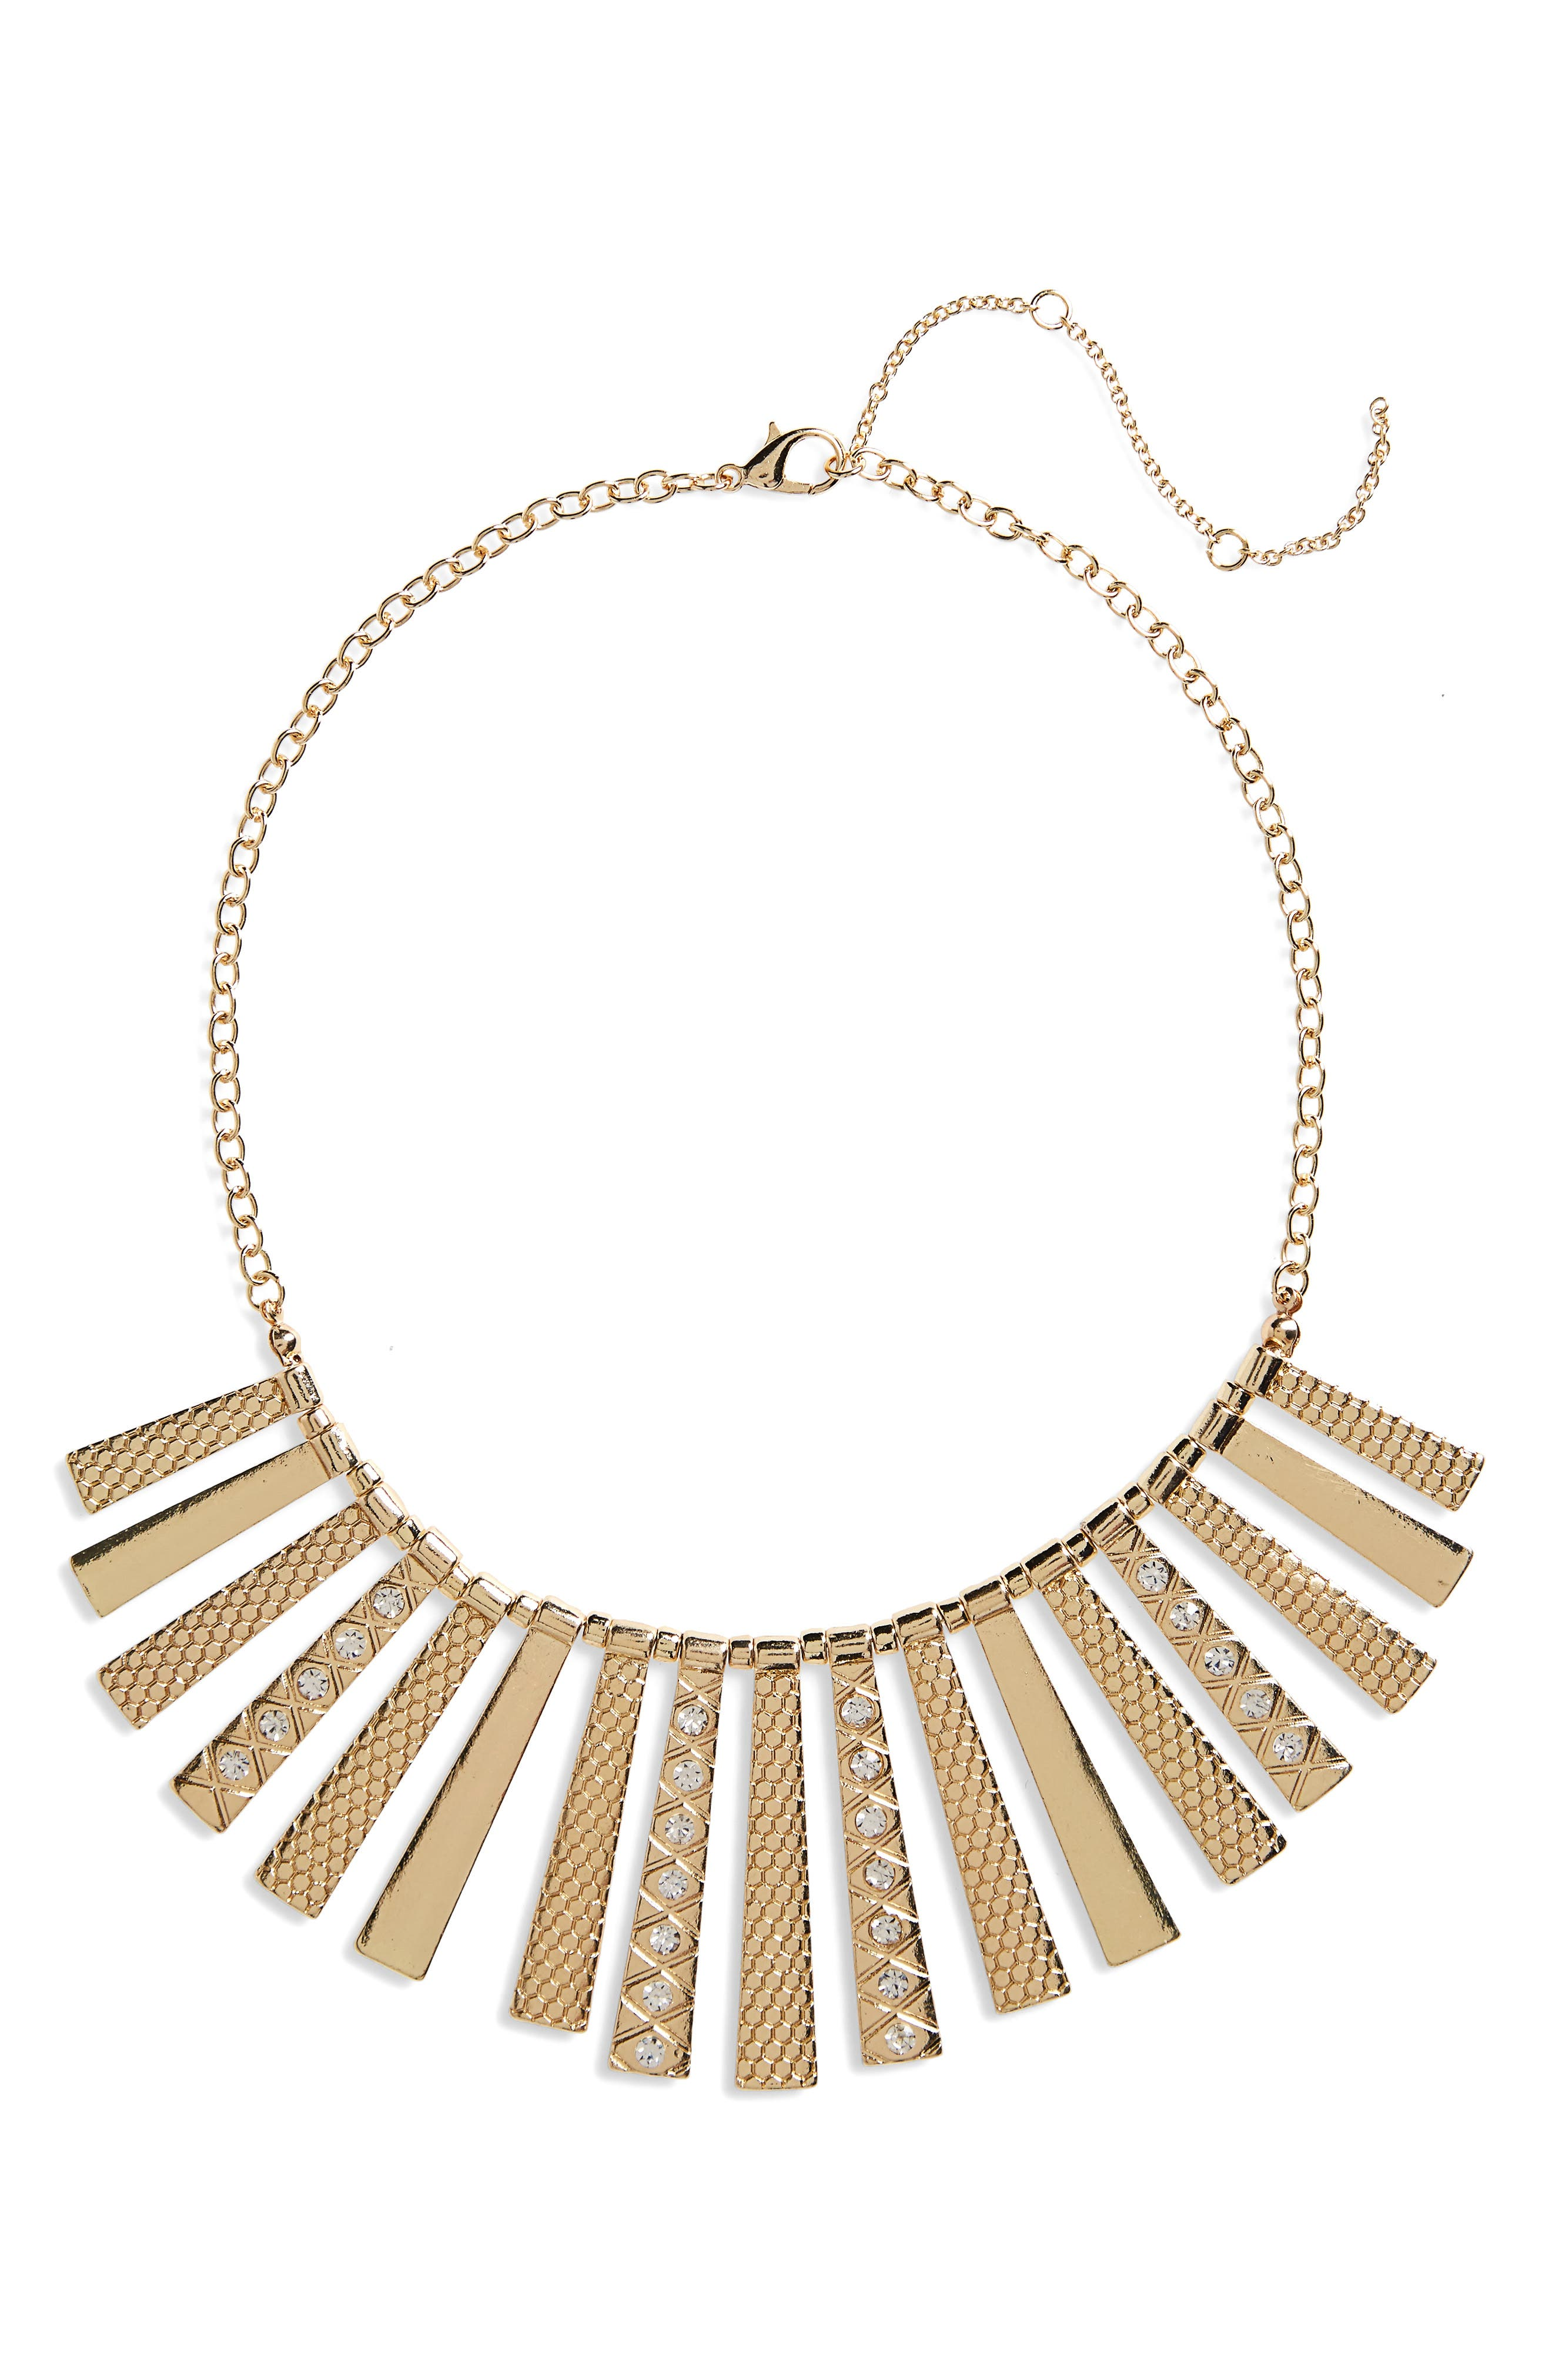 Textured Statement Necklace,                             Main thumbnail 1, color,                             Gold/ Crystal